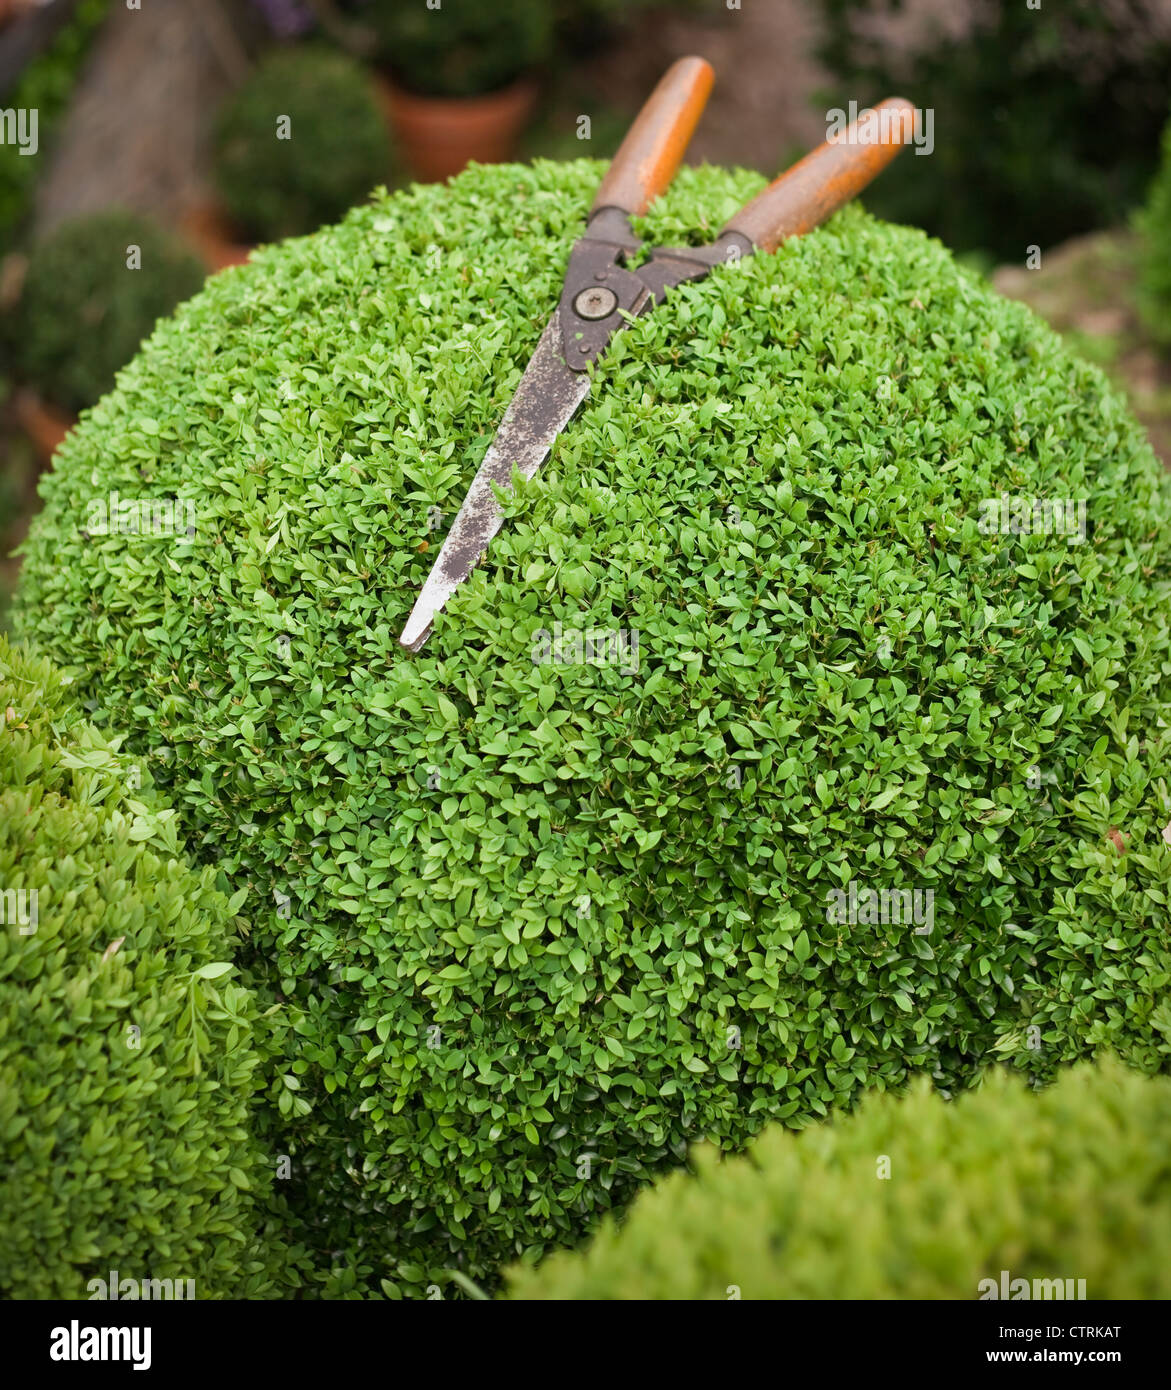 Spring pruning dome shaped Buxus sempevirens evergreen garden topiary with vintage handshears, May - Stock Image